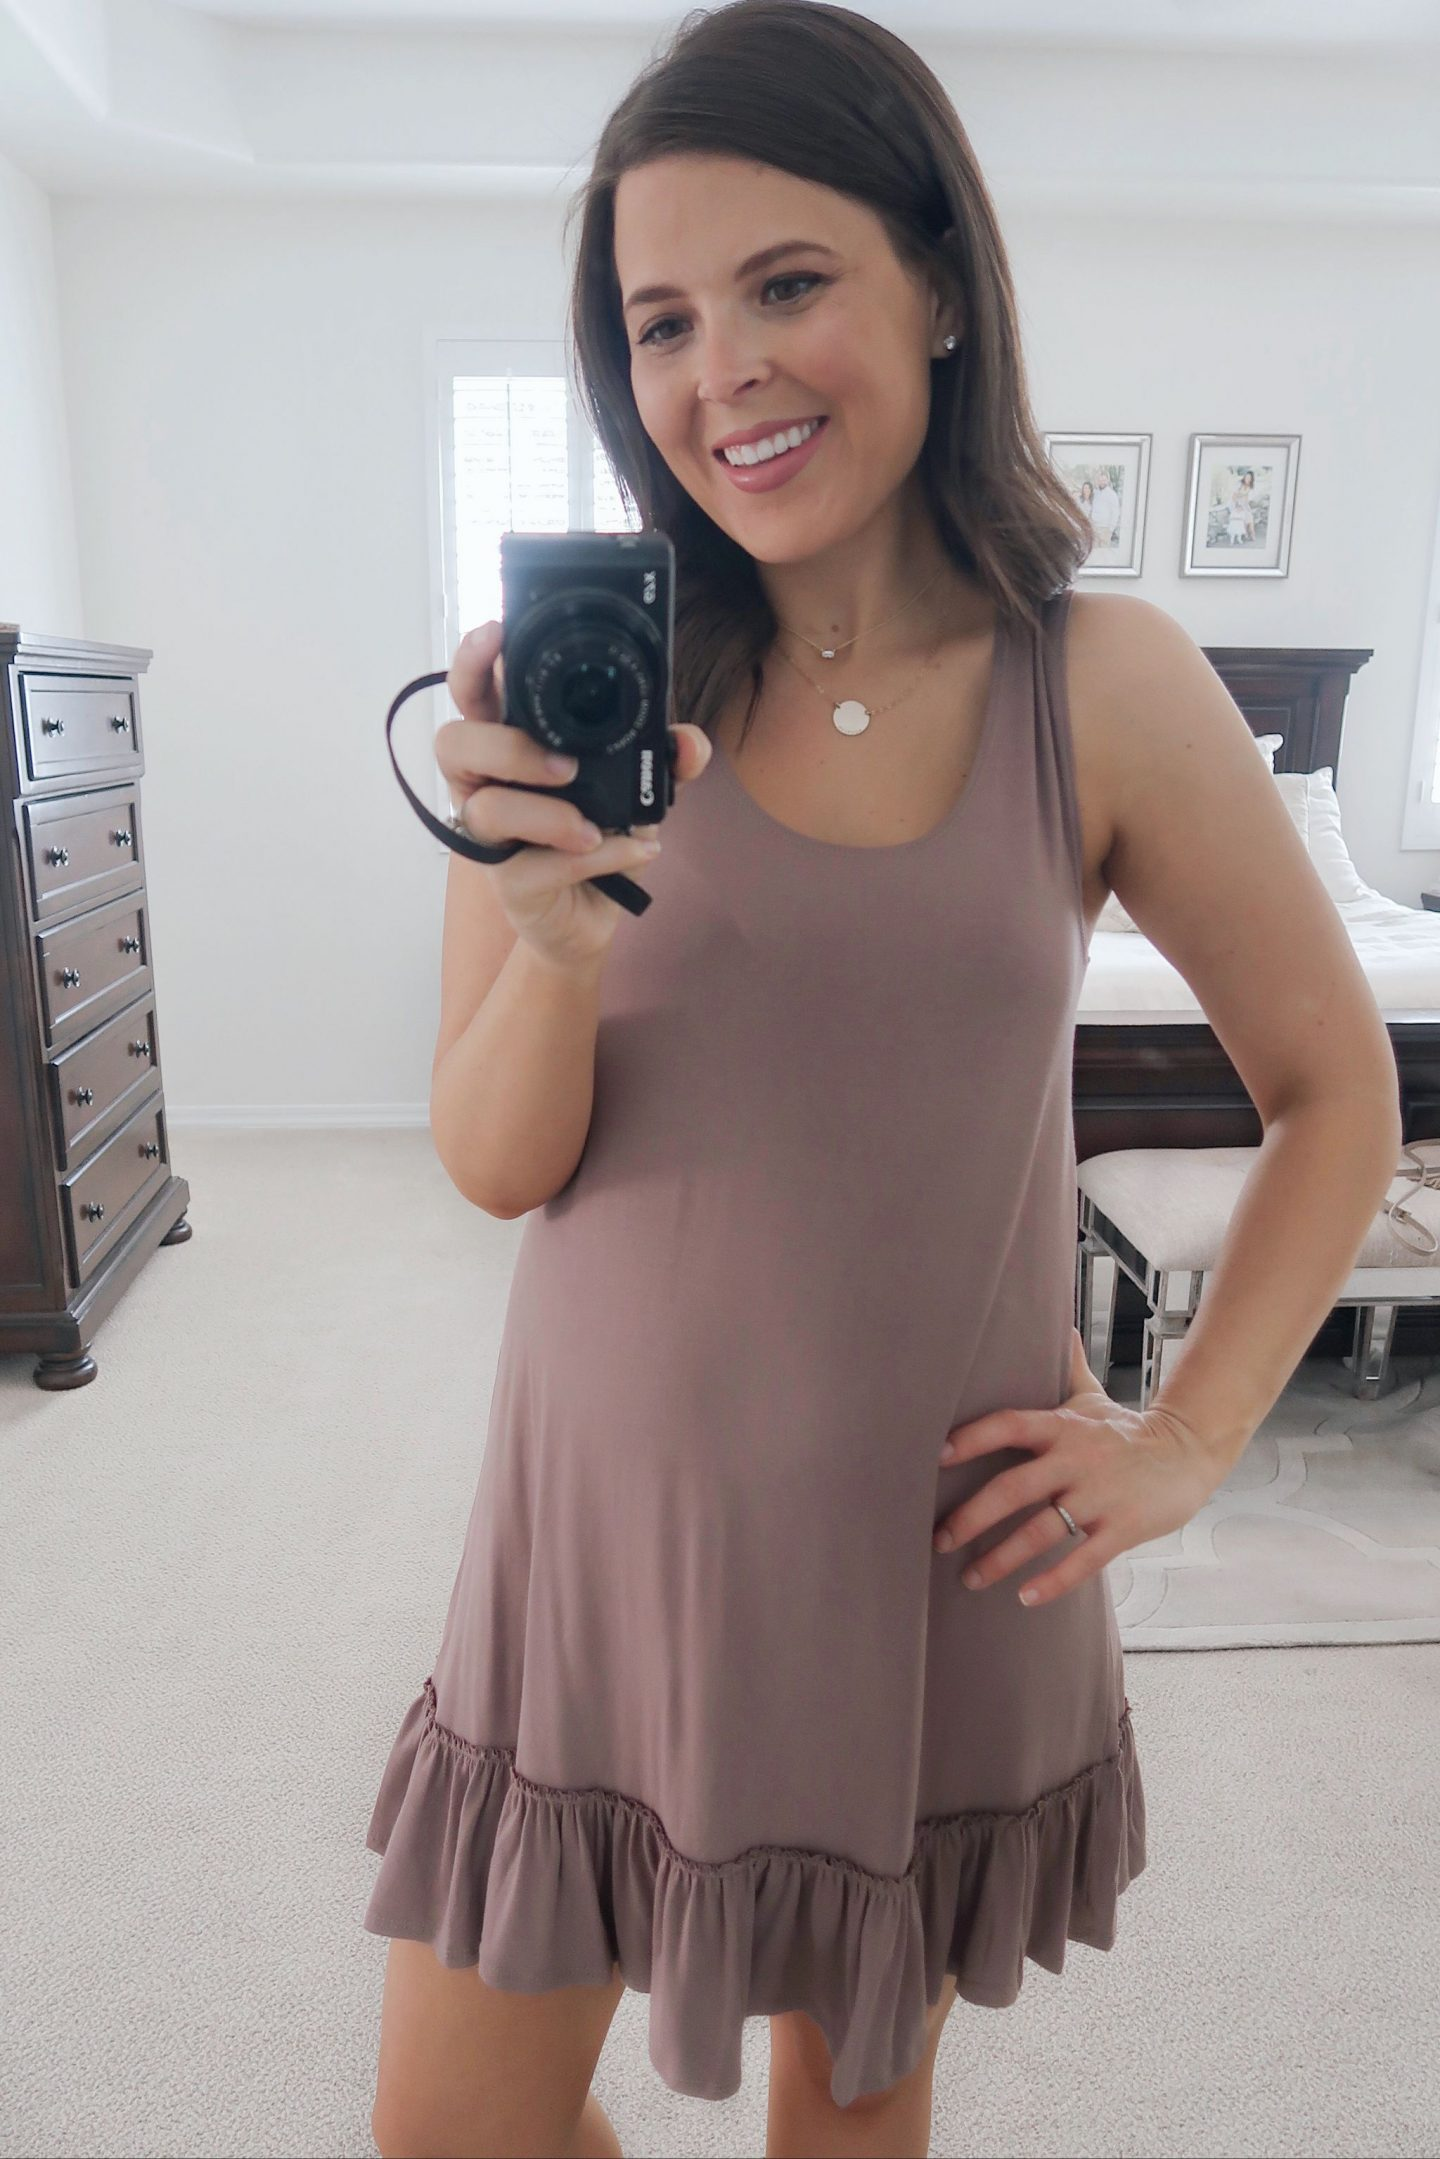 amazon try-on http://briebemisrearick.com/wp-content/uploads/2019/04/brie_bemis_rearick_amazon_tank_dress_with_ruffled_hem_iconic_luxe_2.jpg